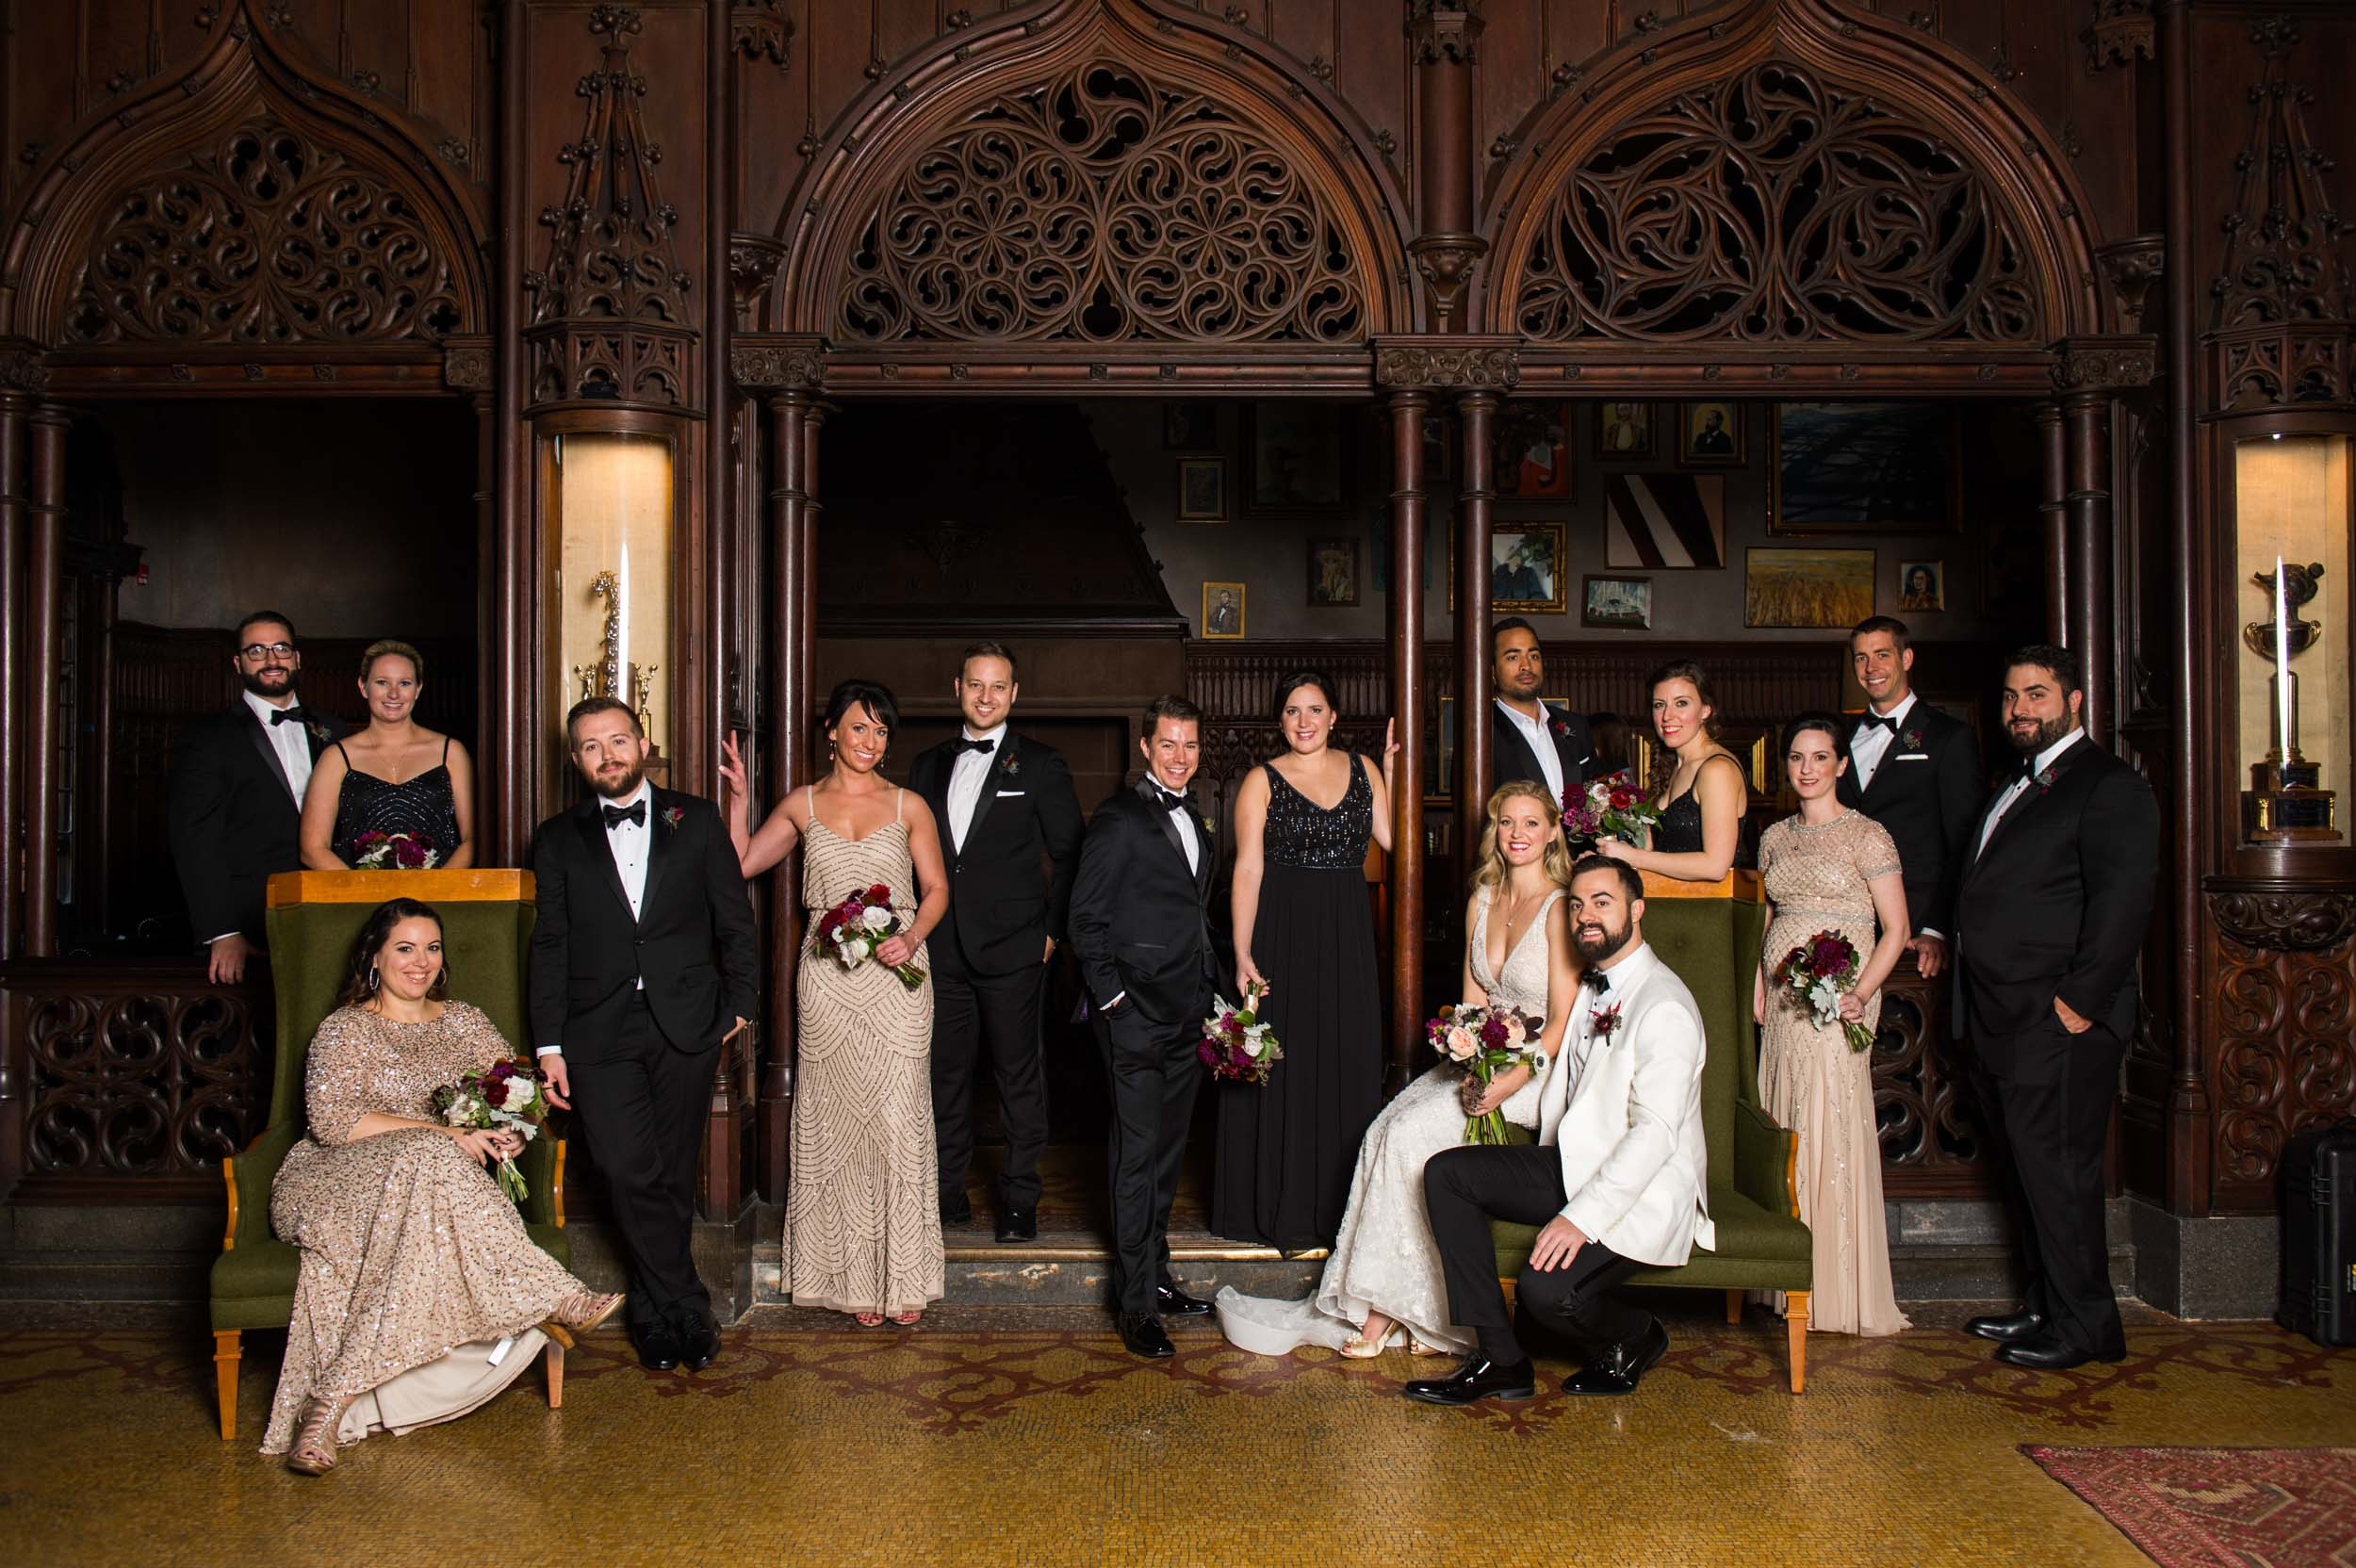 Editorial wedding party portrait at Chicago Athletic Association Hotel